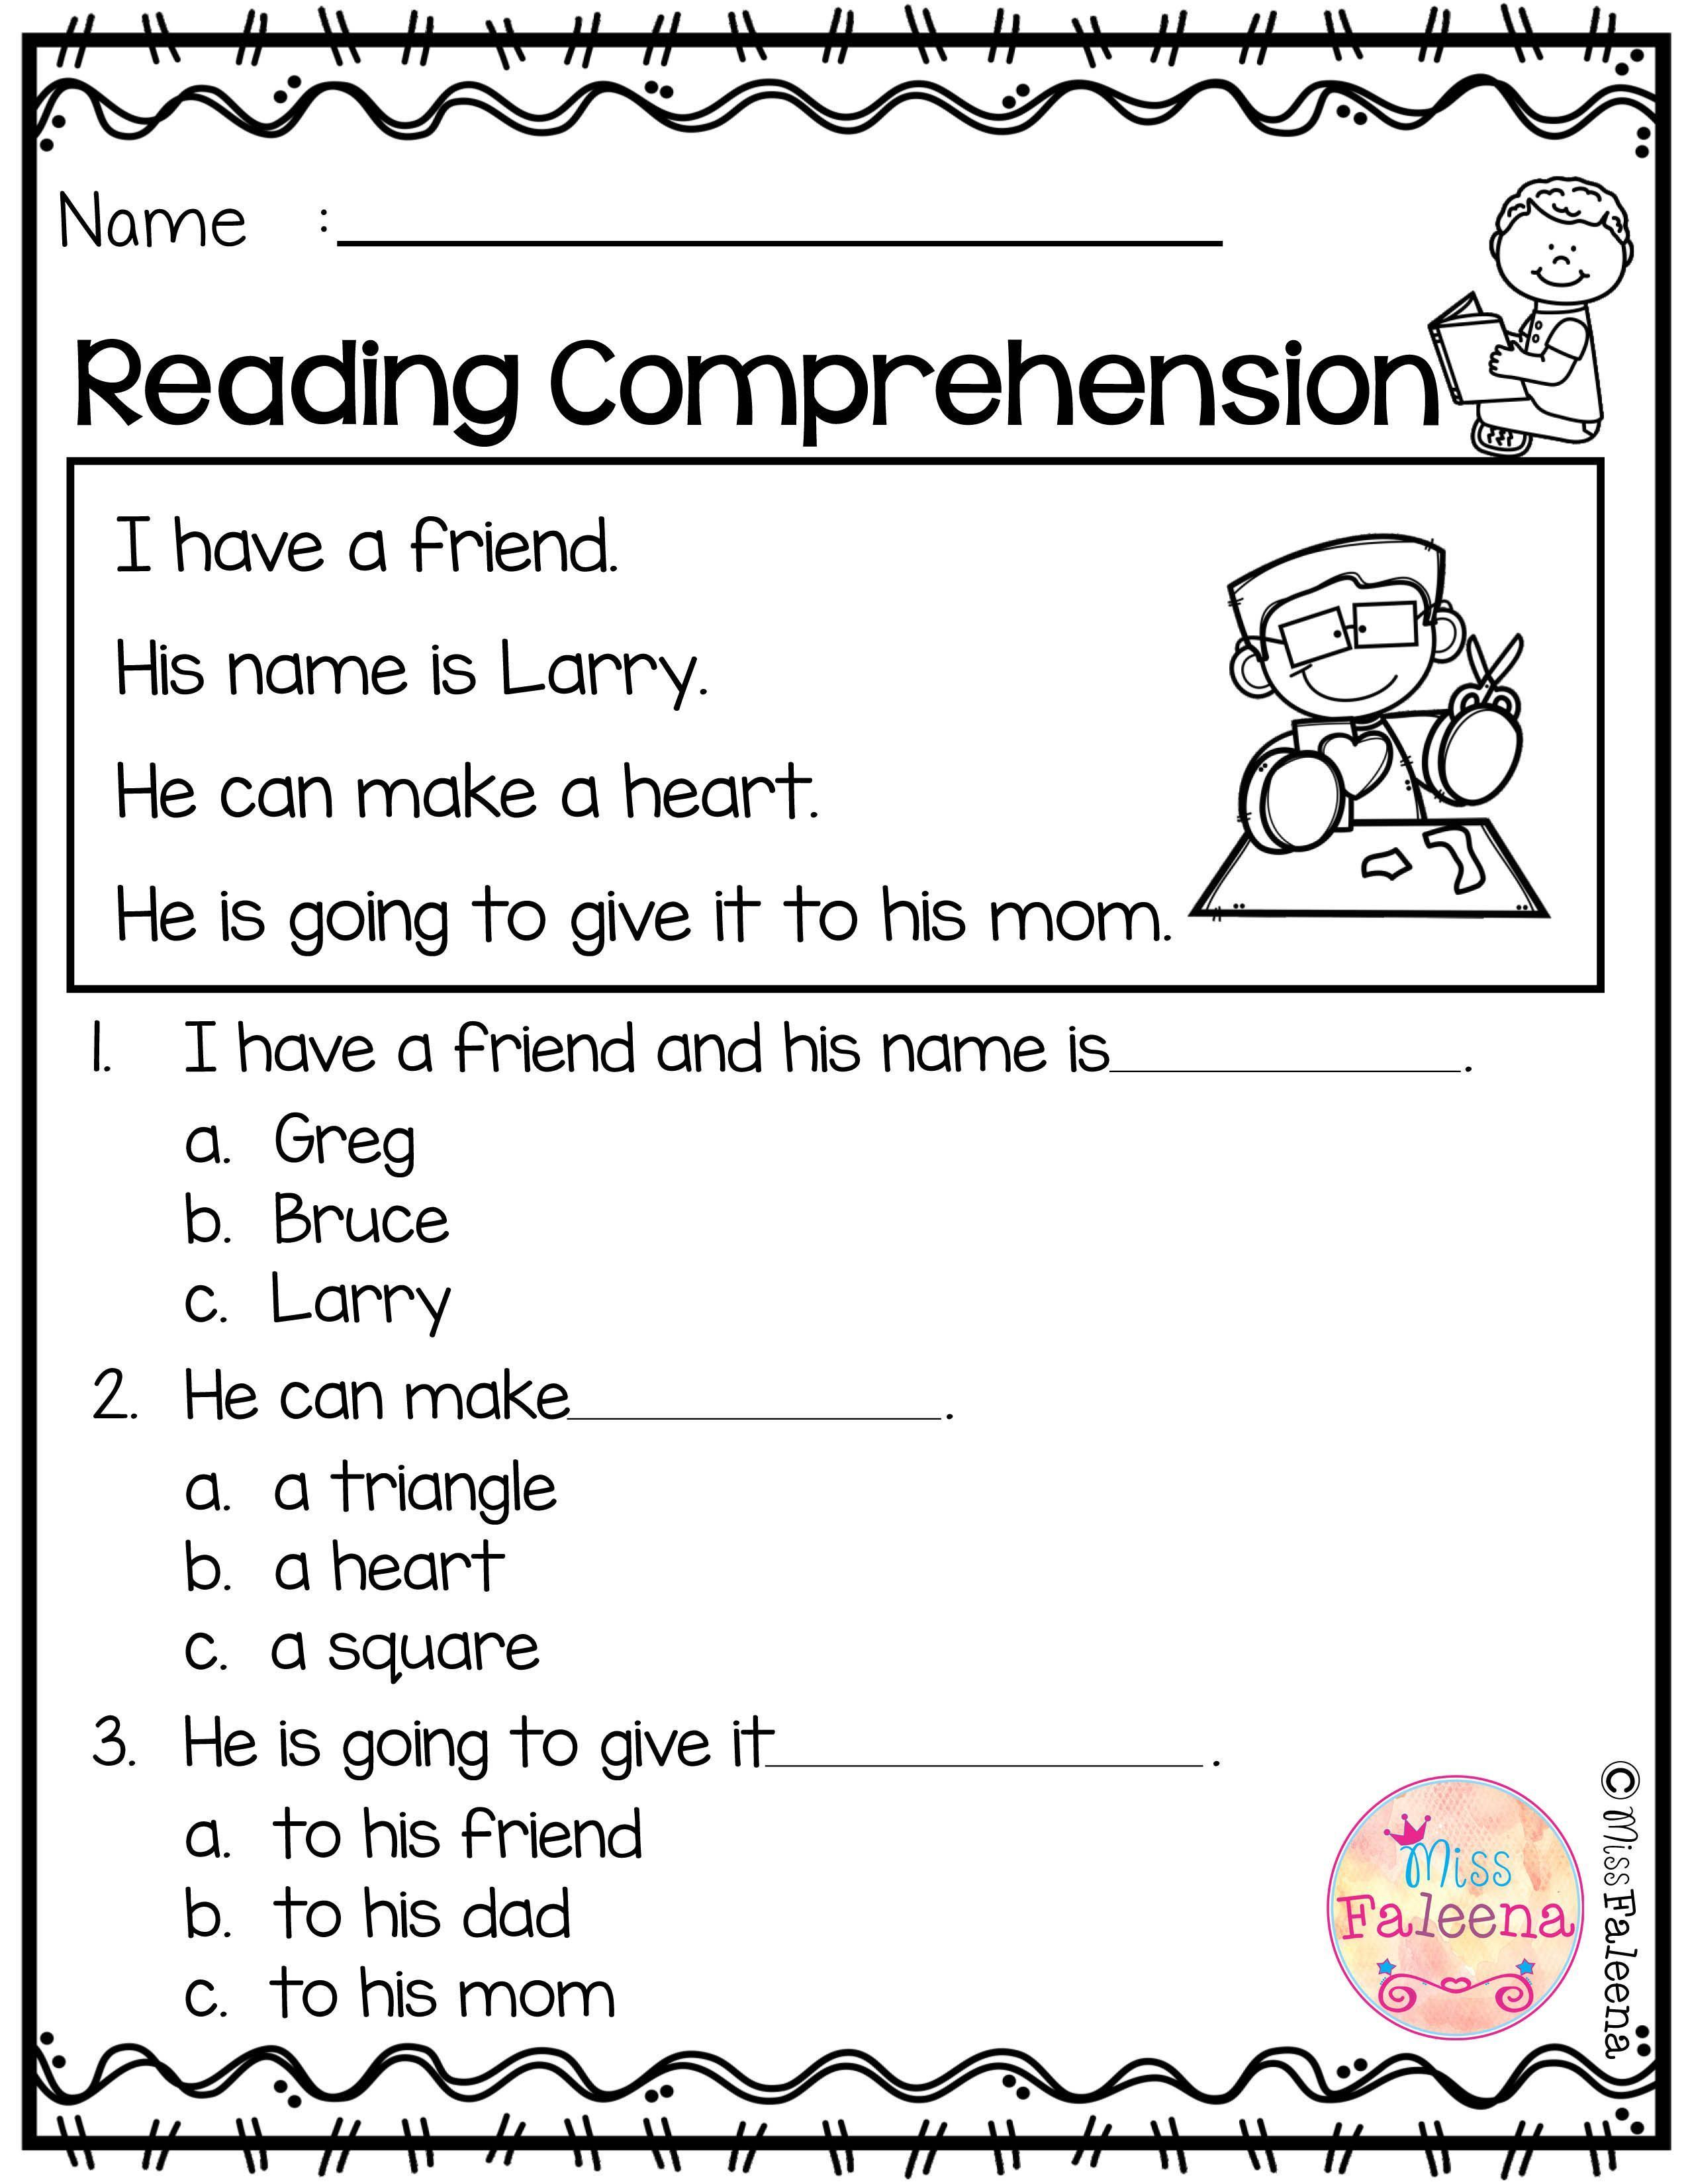 Reading Comprehension Worksheets Free Reading Comprehension Reading Comprehension Reading Comprehension Worksheets Reading Comprehension Kindergarten [ 3300 x 2550 Pixel ]